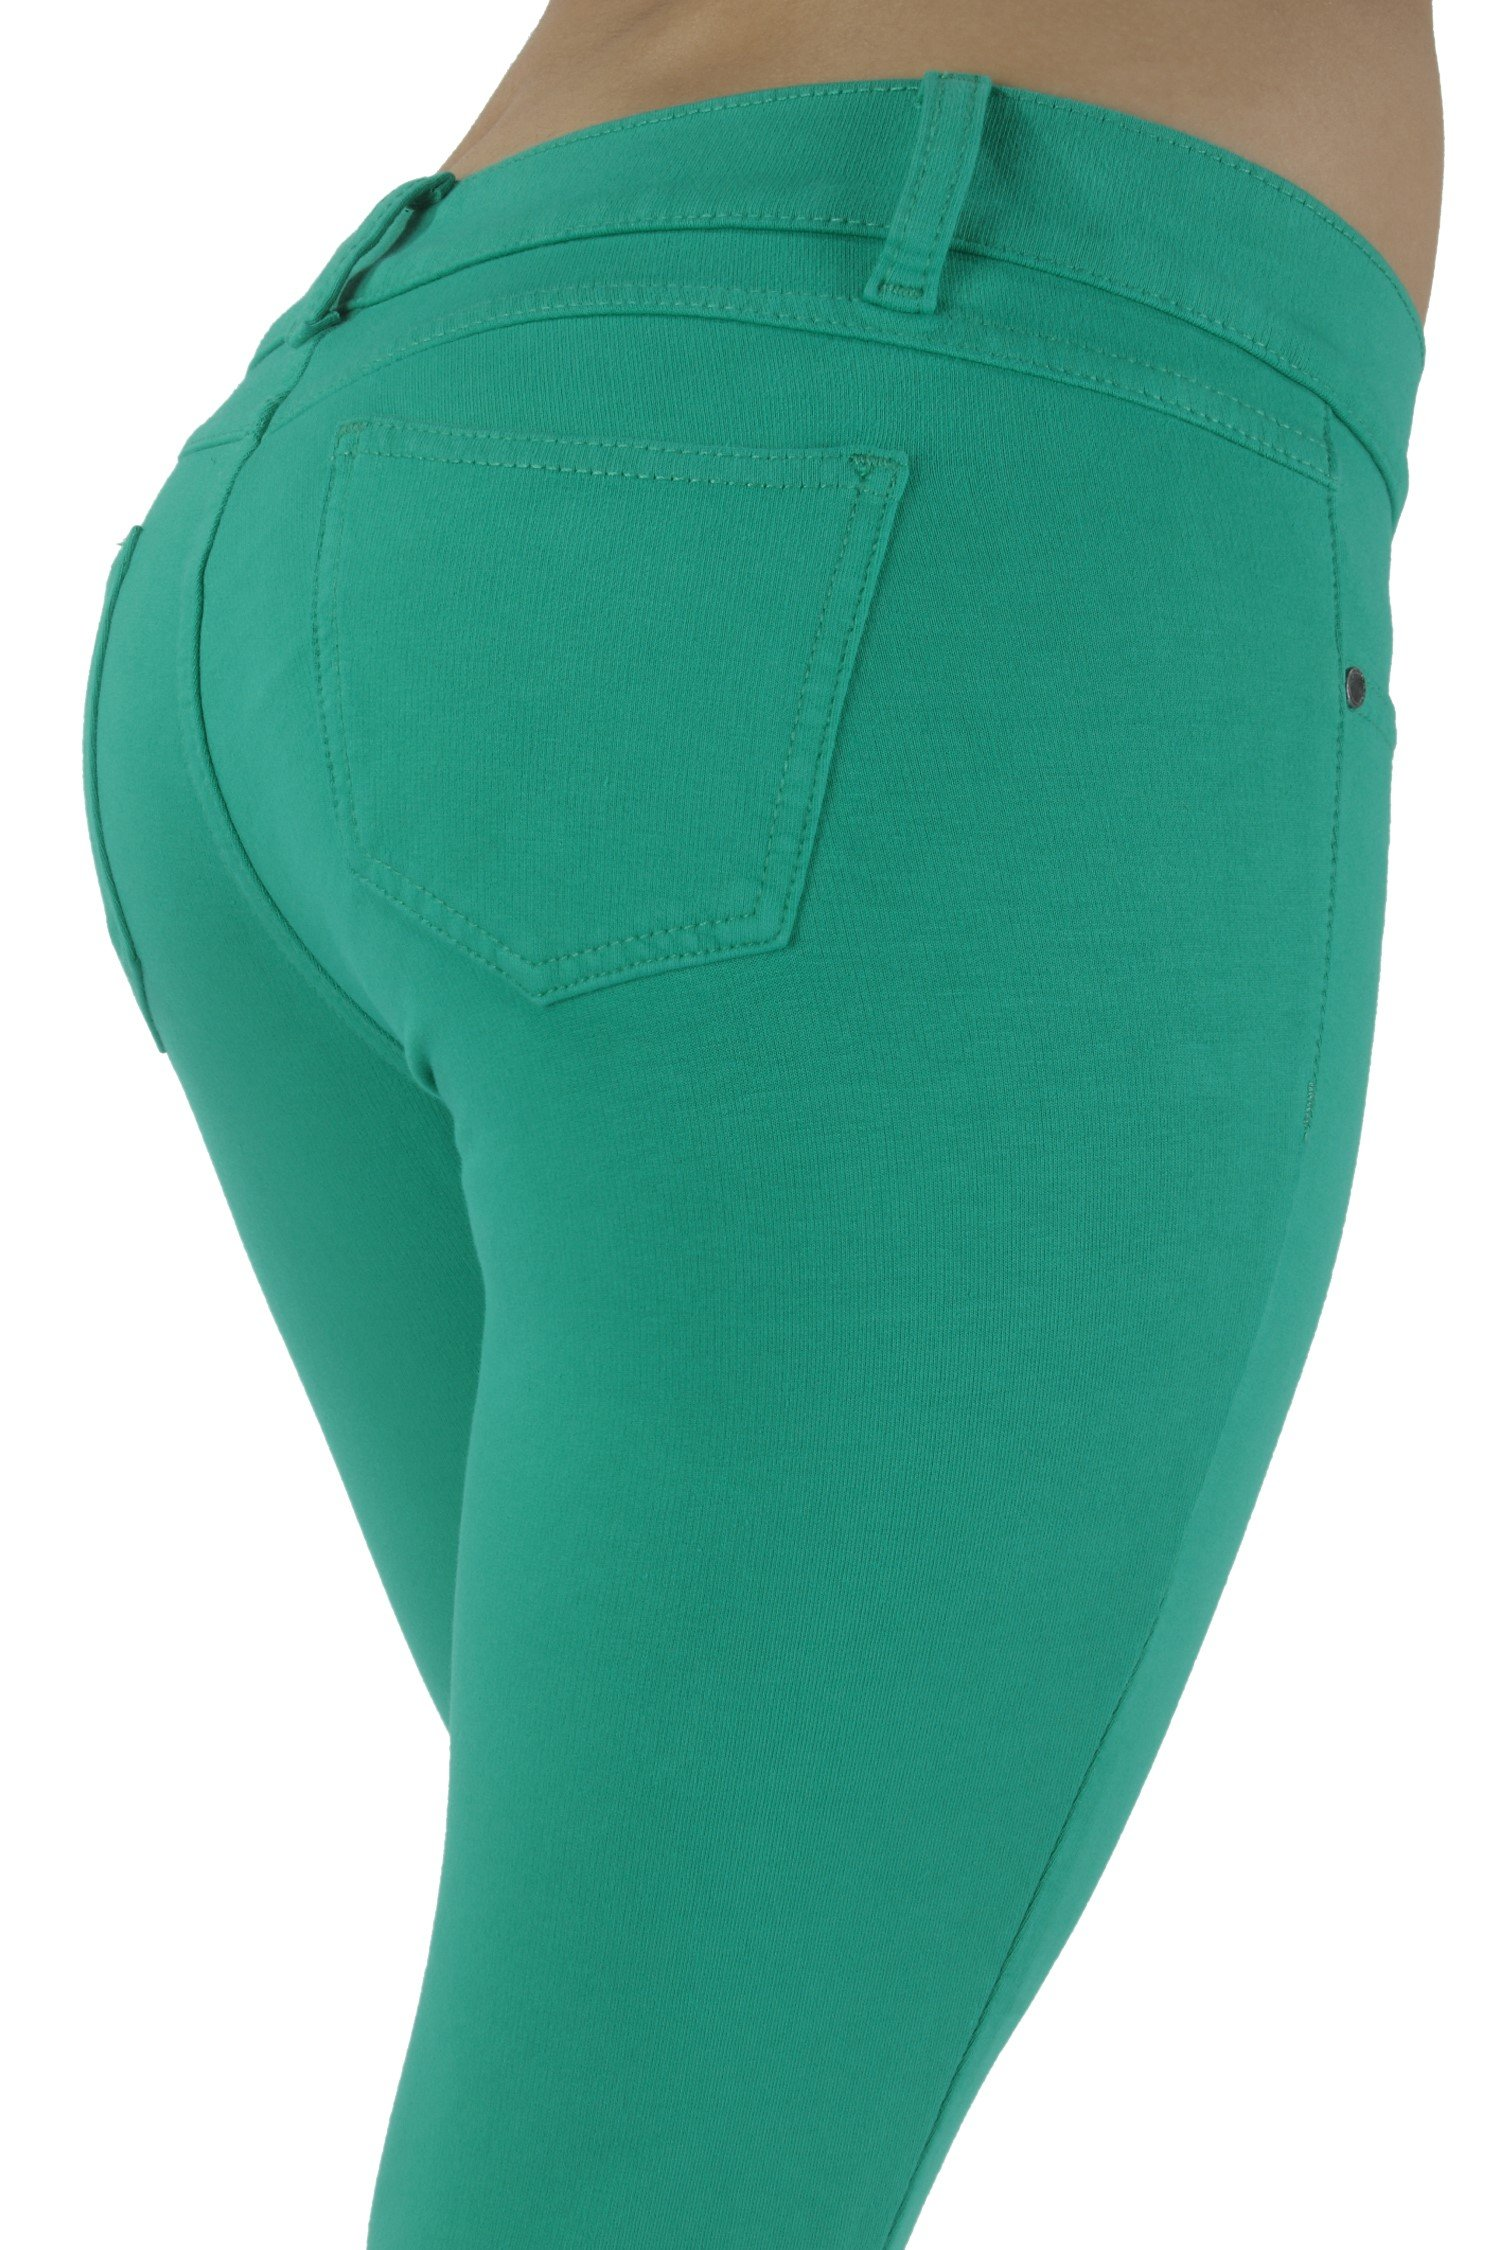 Basic pants skinny leg French Terry Jeggings style Moleton, With a gentle butt lifting stitching in Deep Mint Size XS